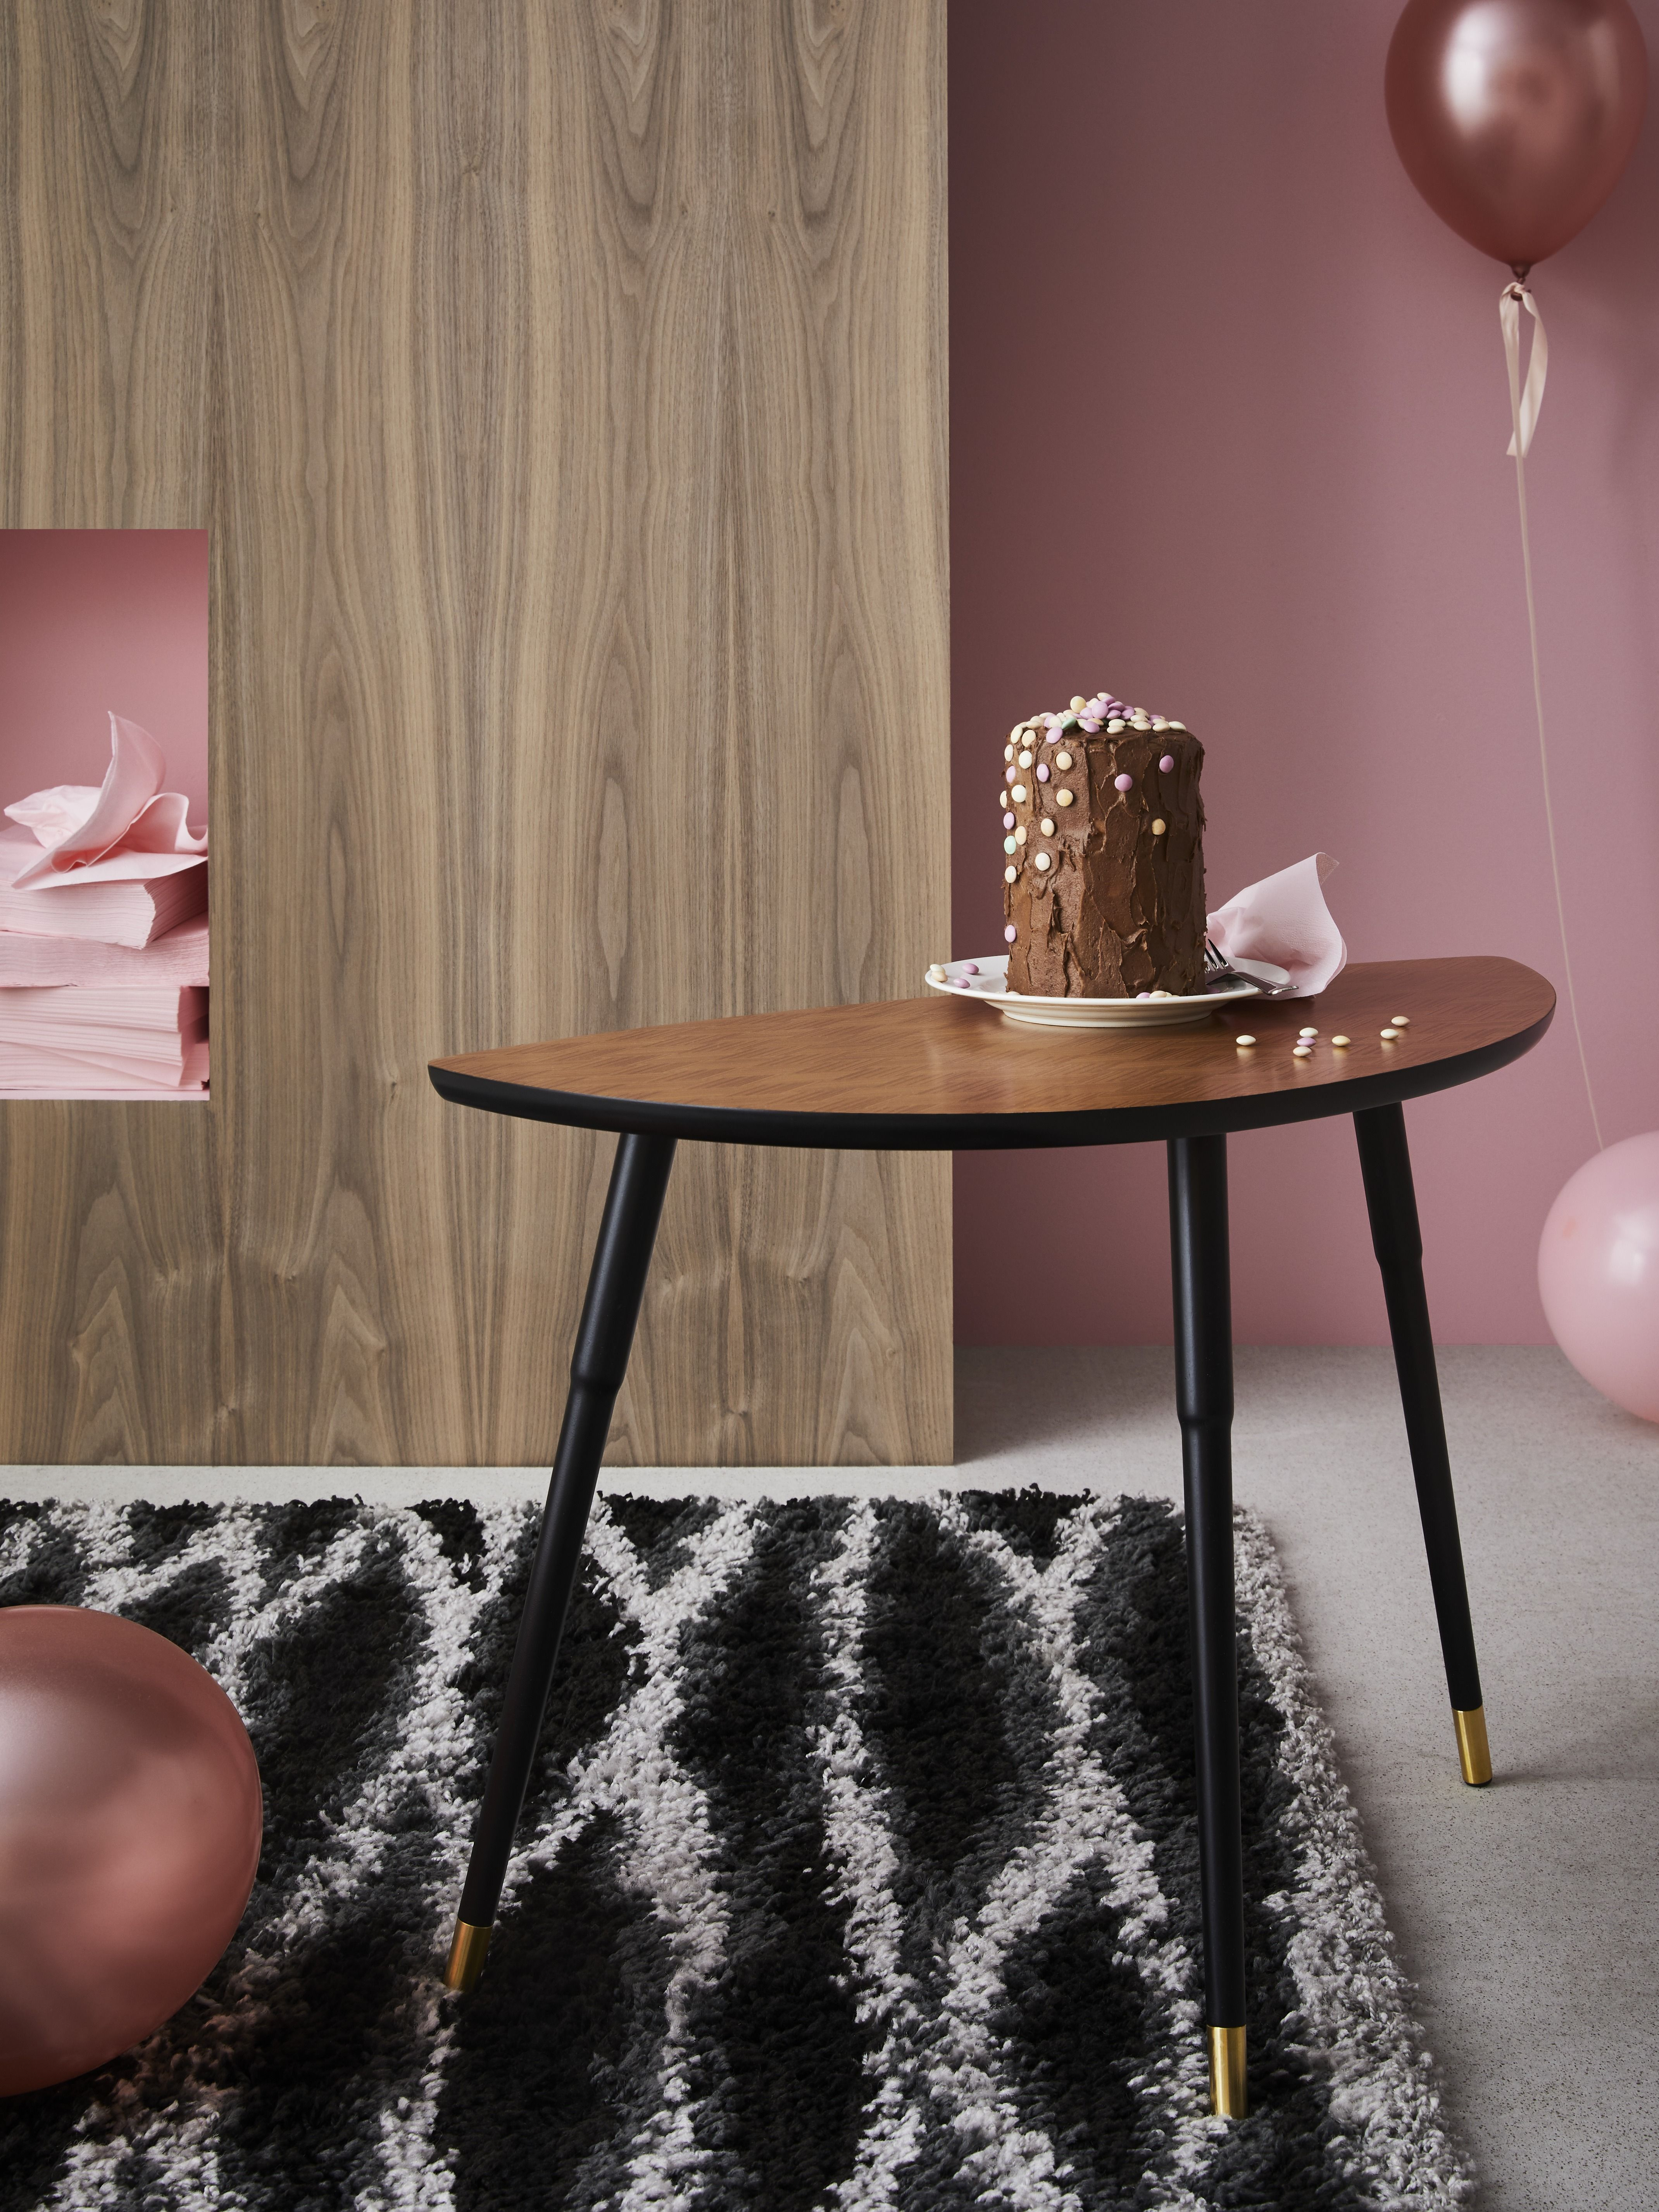 Ikeas 75th anniversary gratulera collection is a blast from the past deco pas cher cadeau